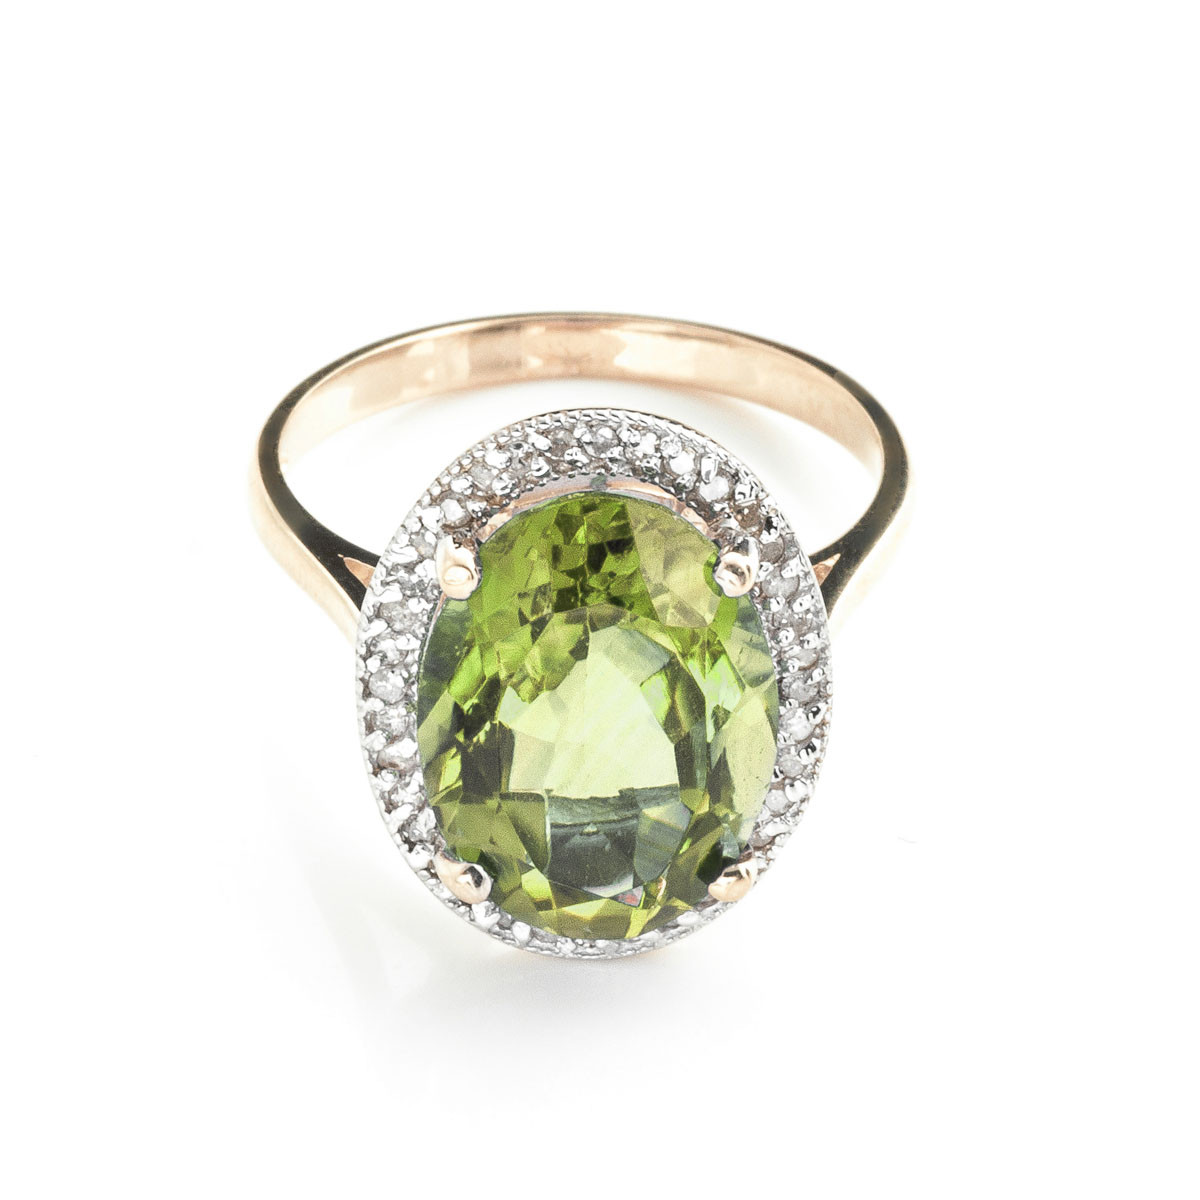 Green Amethyst Halo Ring 5.28 ctw in 9ct Rose Gold